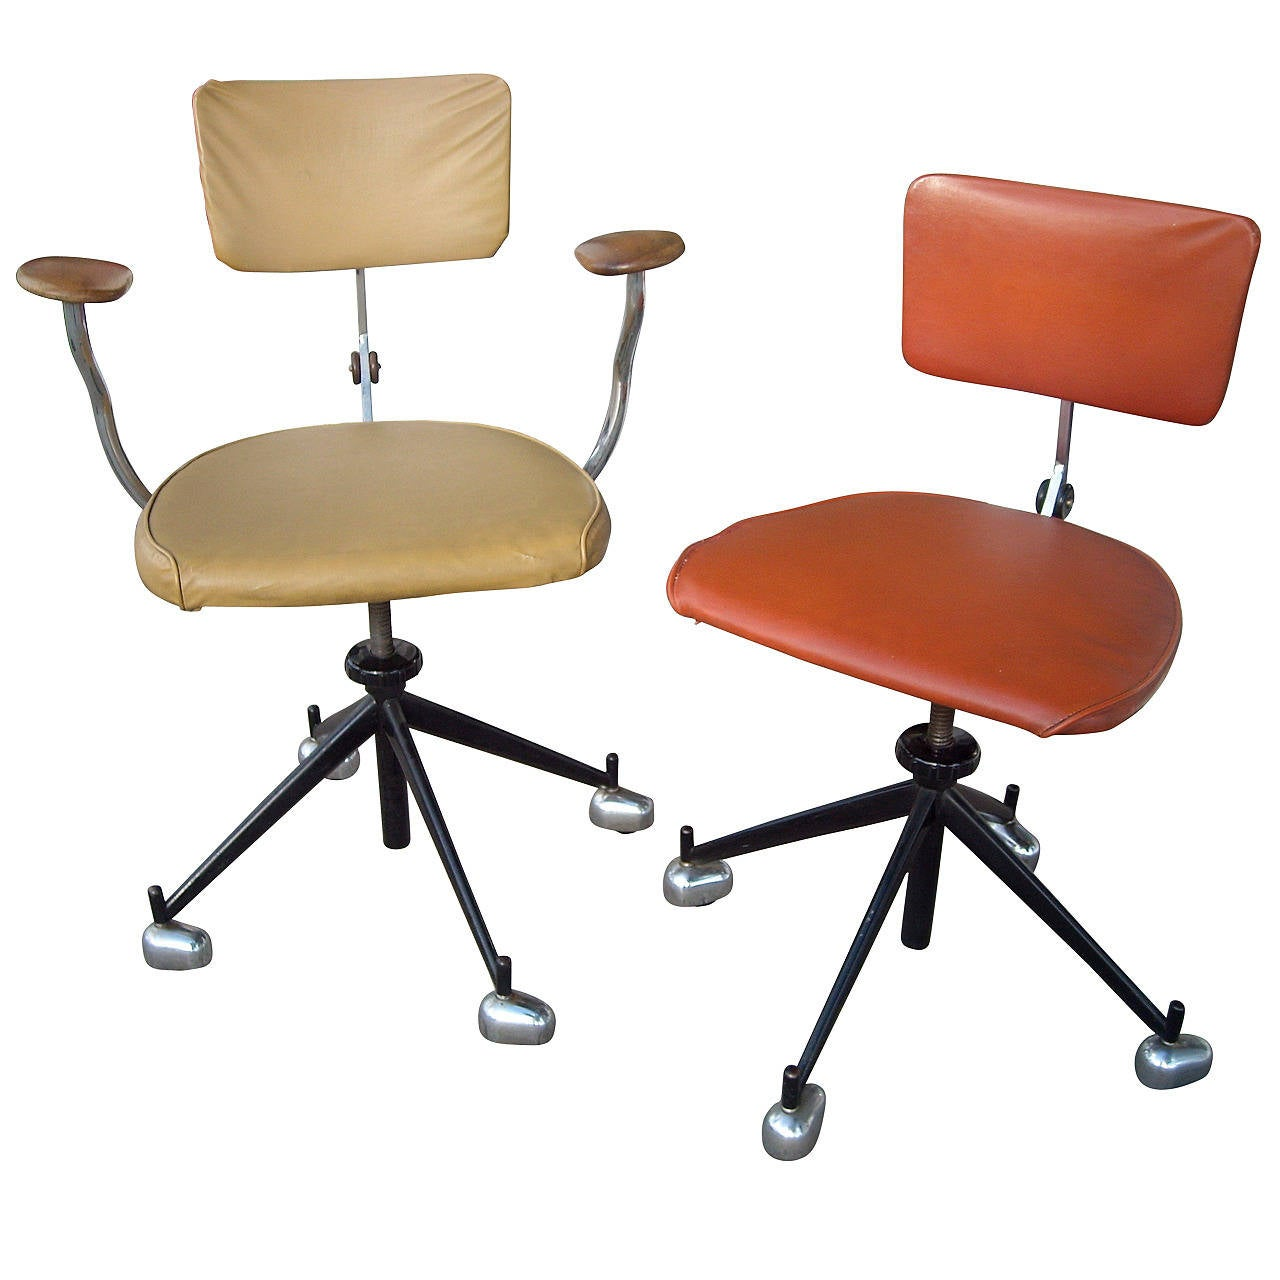 adjustable desk chairs tan leather chair with ottoman jorgen rasmussen two industrial modern kevi office or for sale